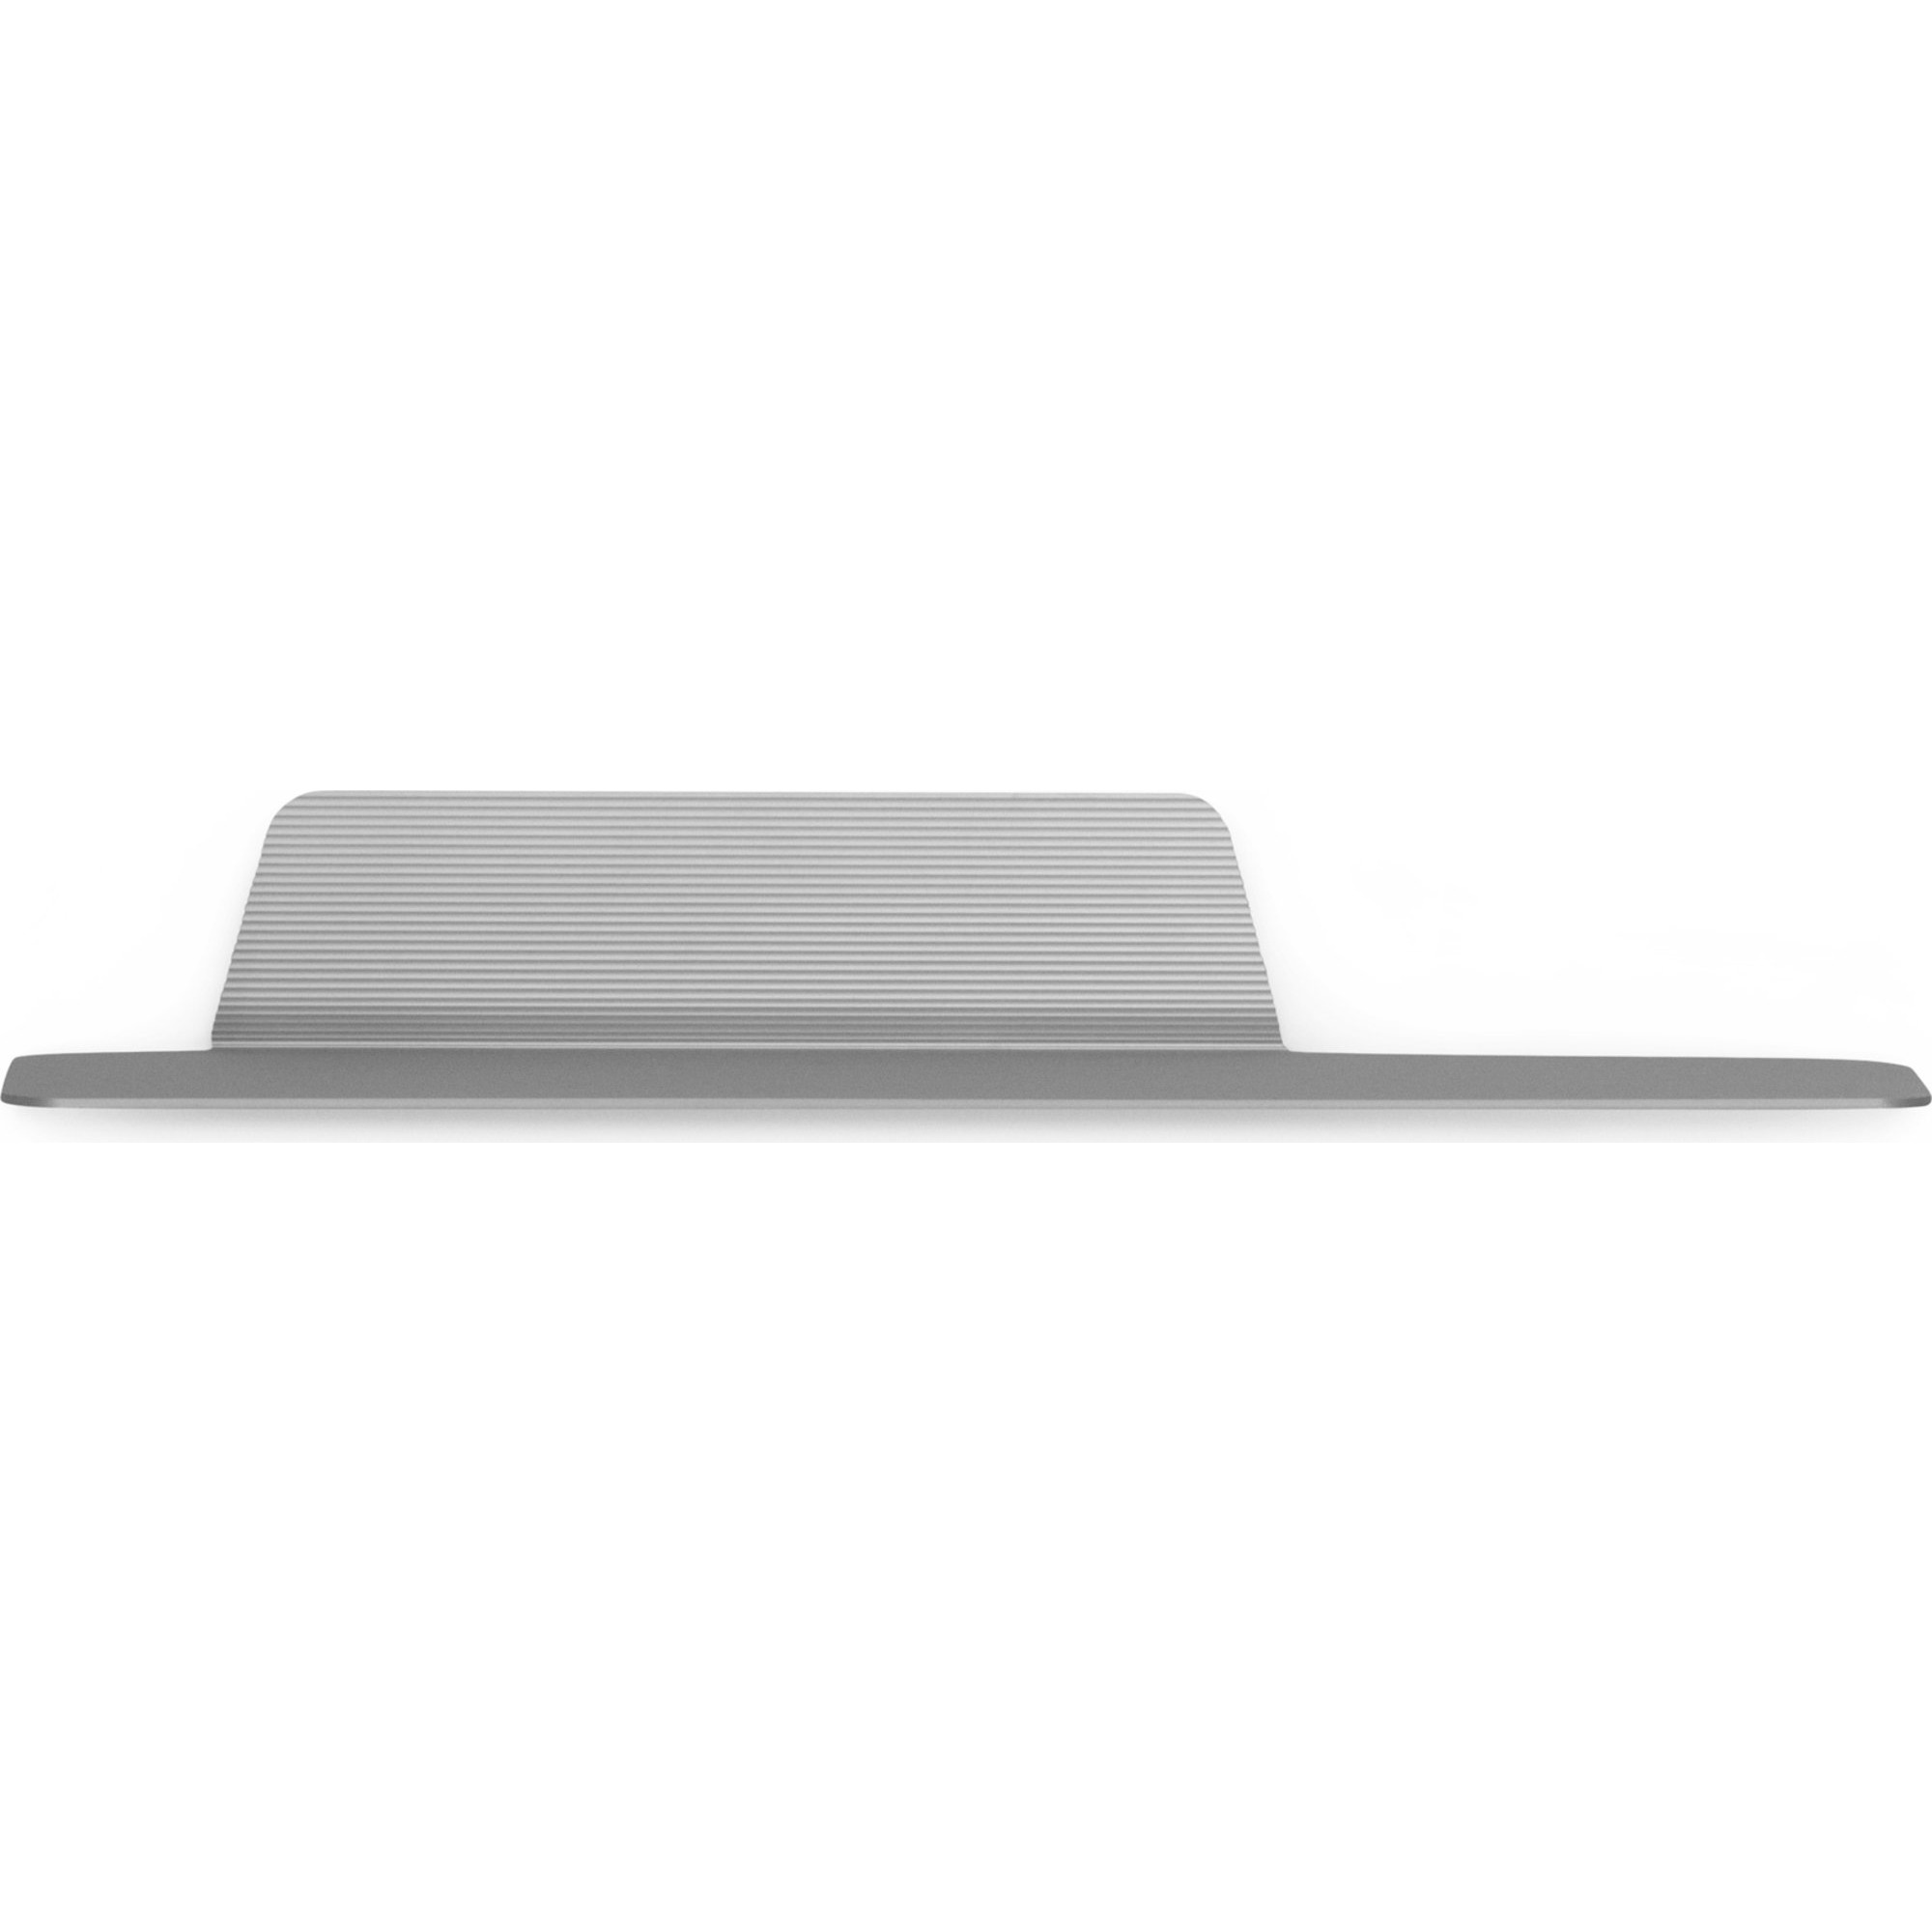 Normann Copenhagen Jet Shelf 80 cm Silver